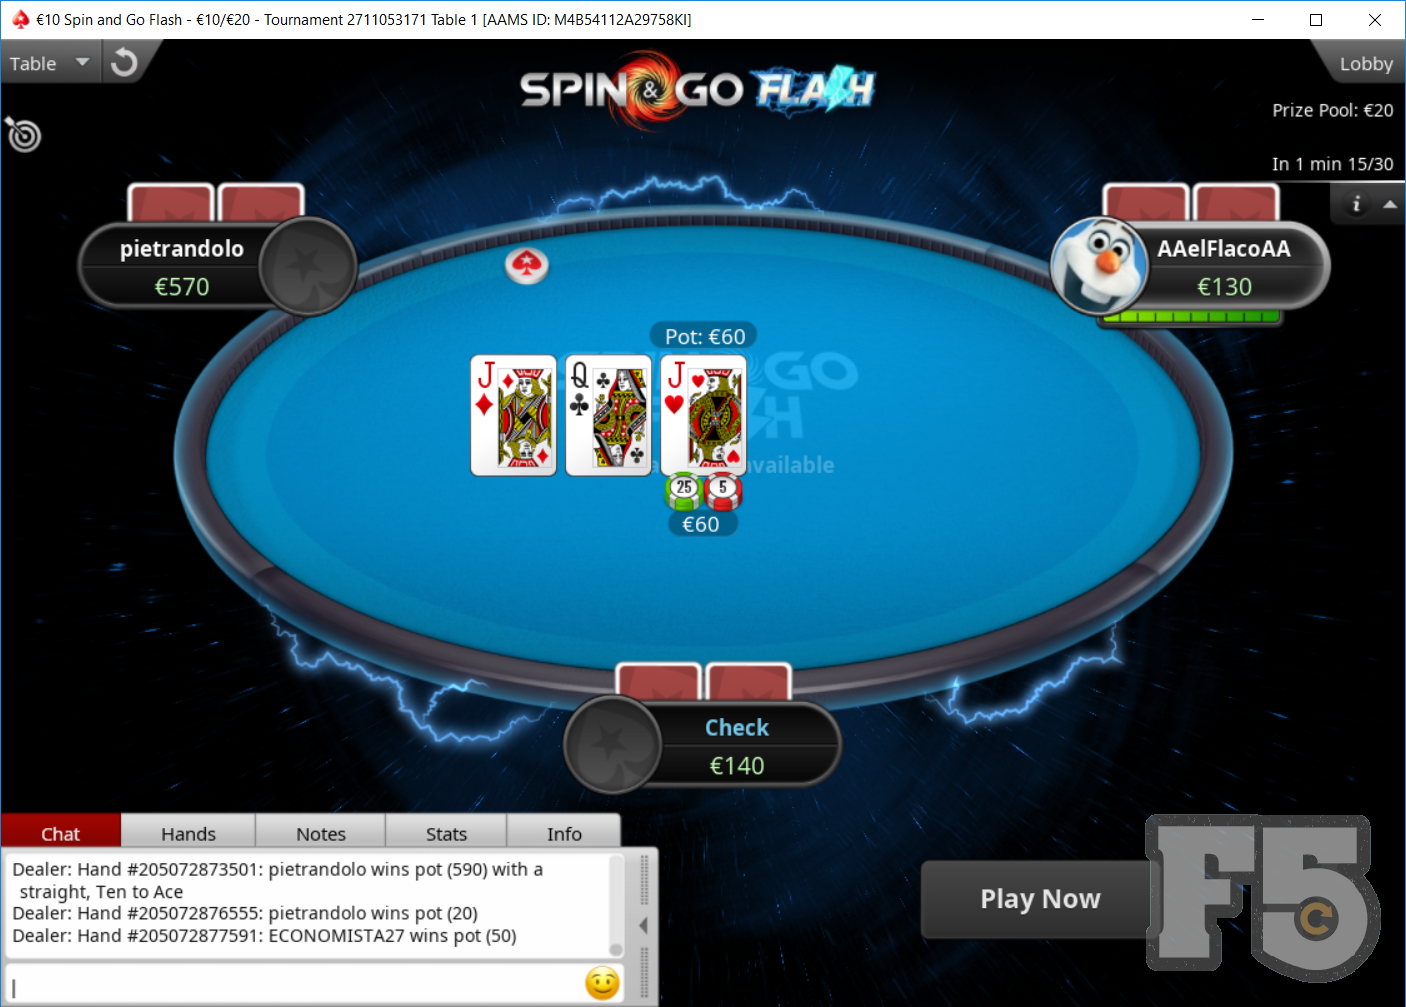 PokerStars Spin&Go Flash